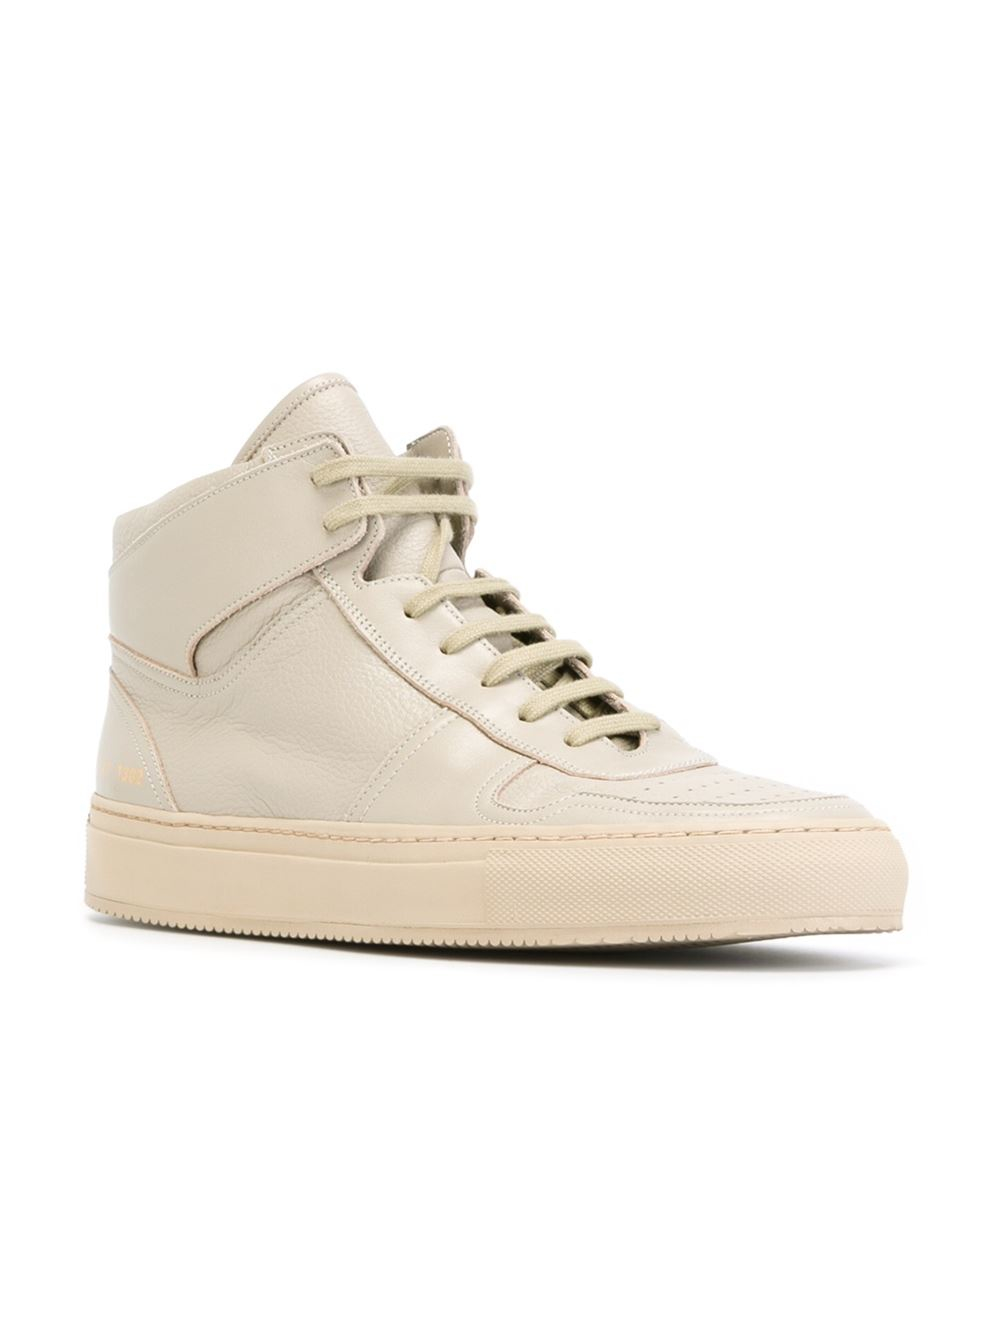 common projects shoes Shop the latest collection of common projects clothing and accessories at fwrd free shipping for orders above $100 usd.